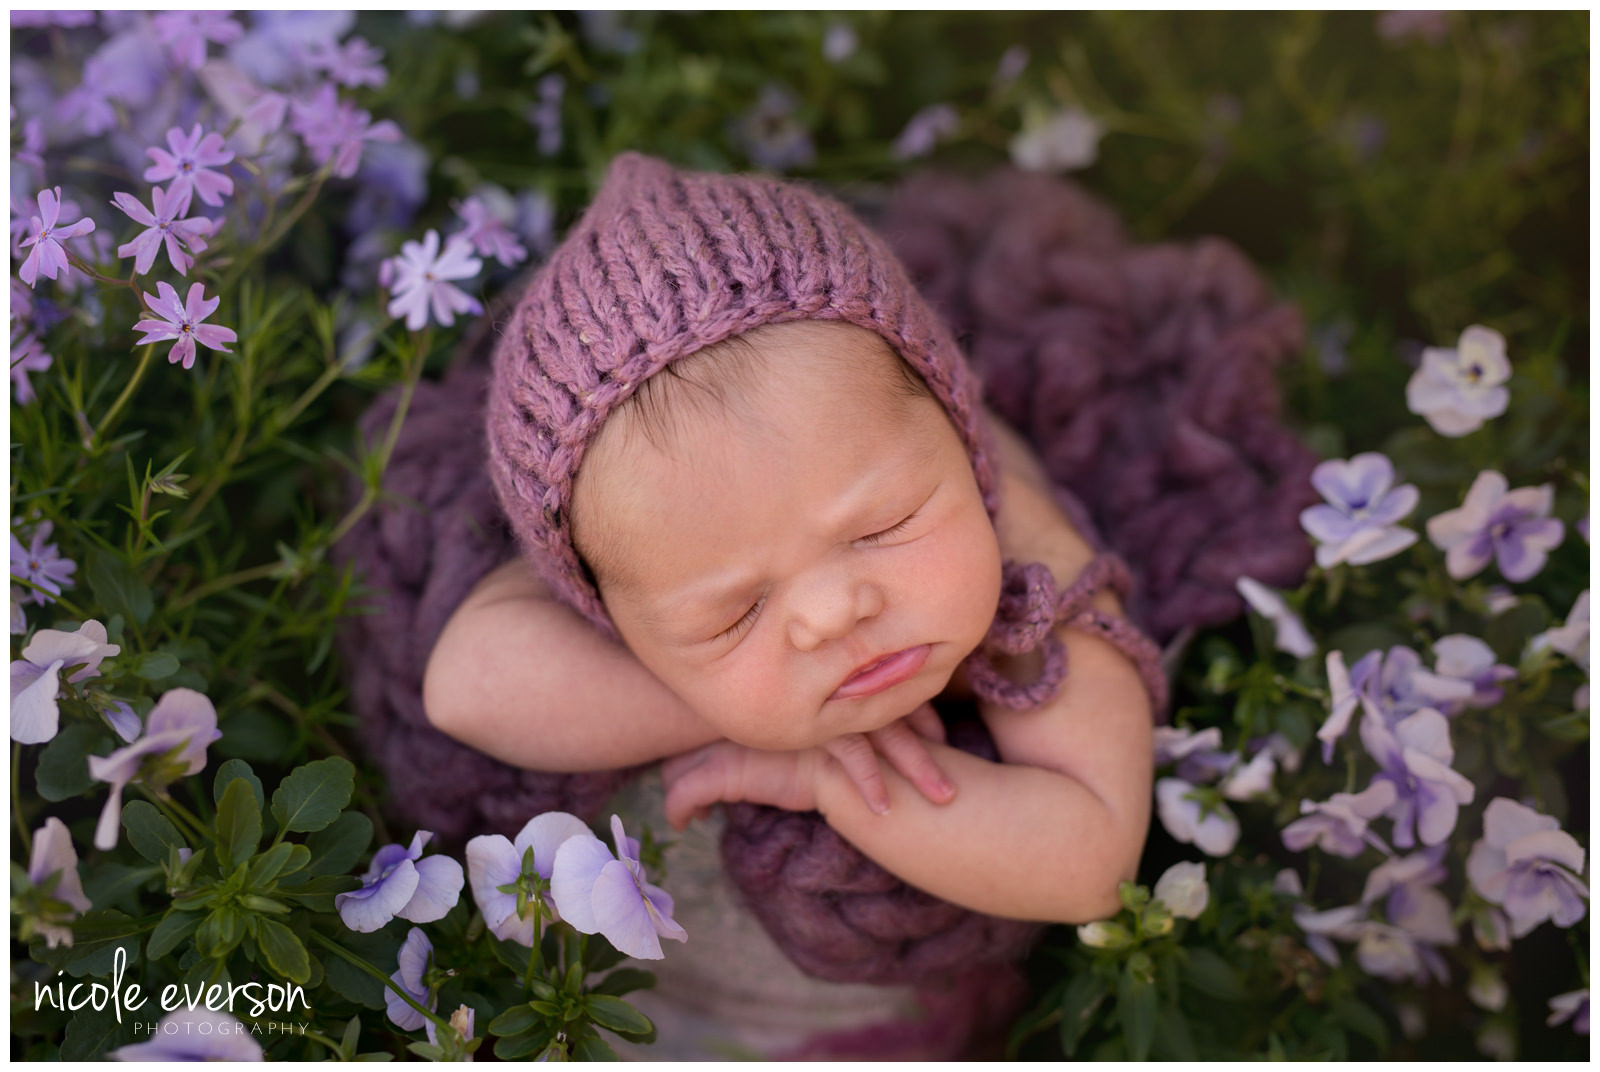 newborn baby girl photographed outside Crestview Florida surrounded by purple spring flowers